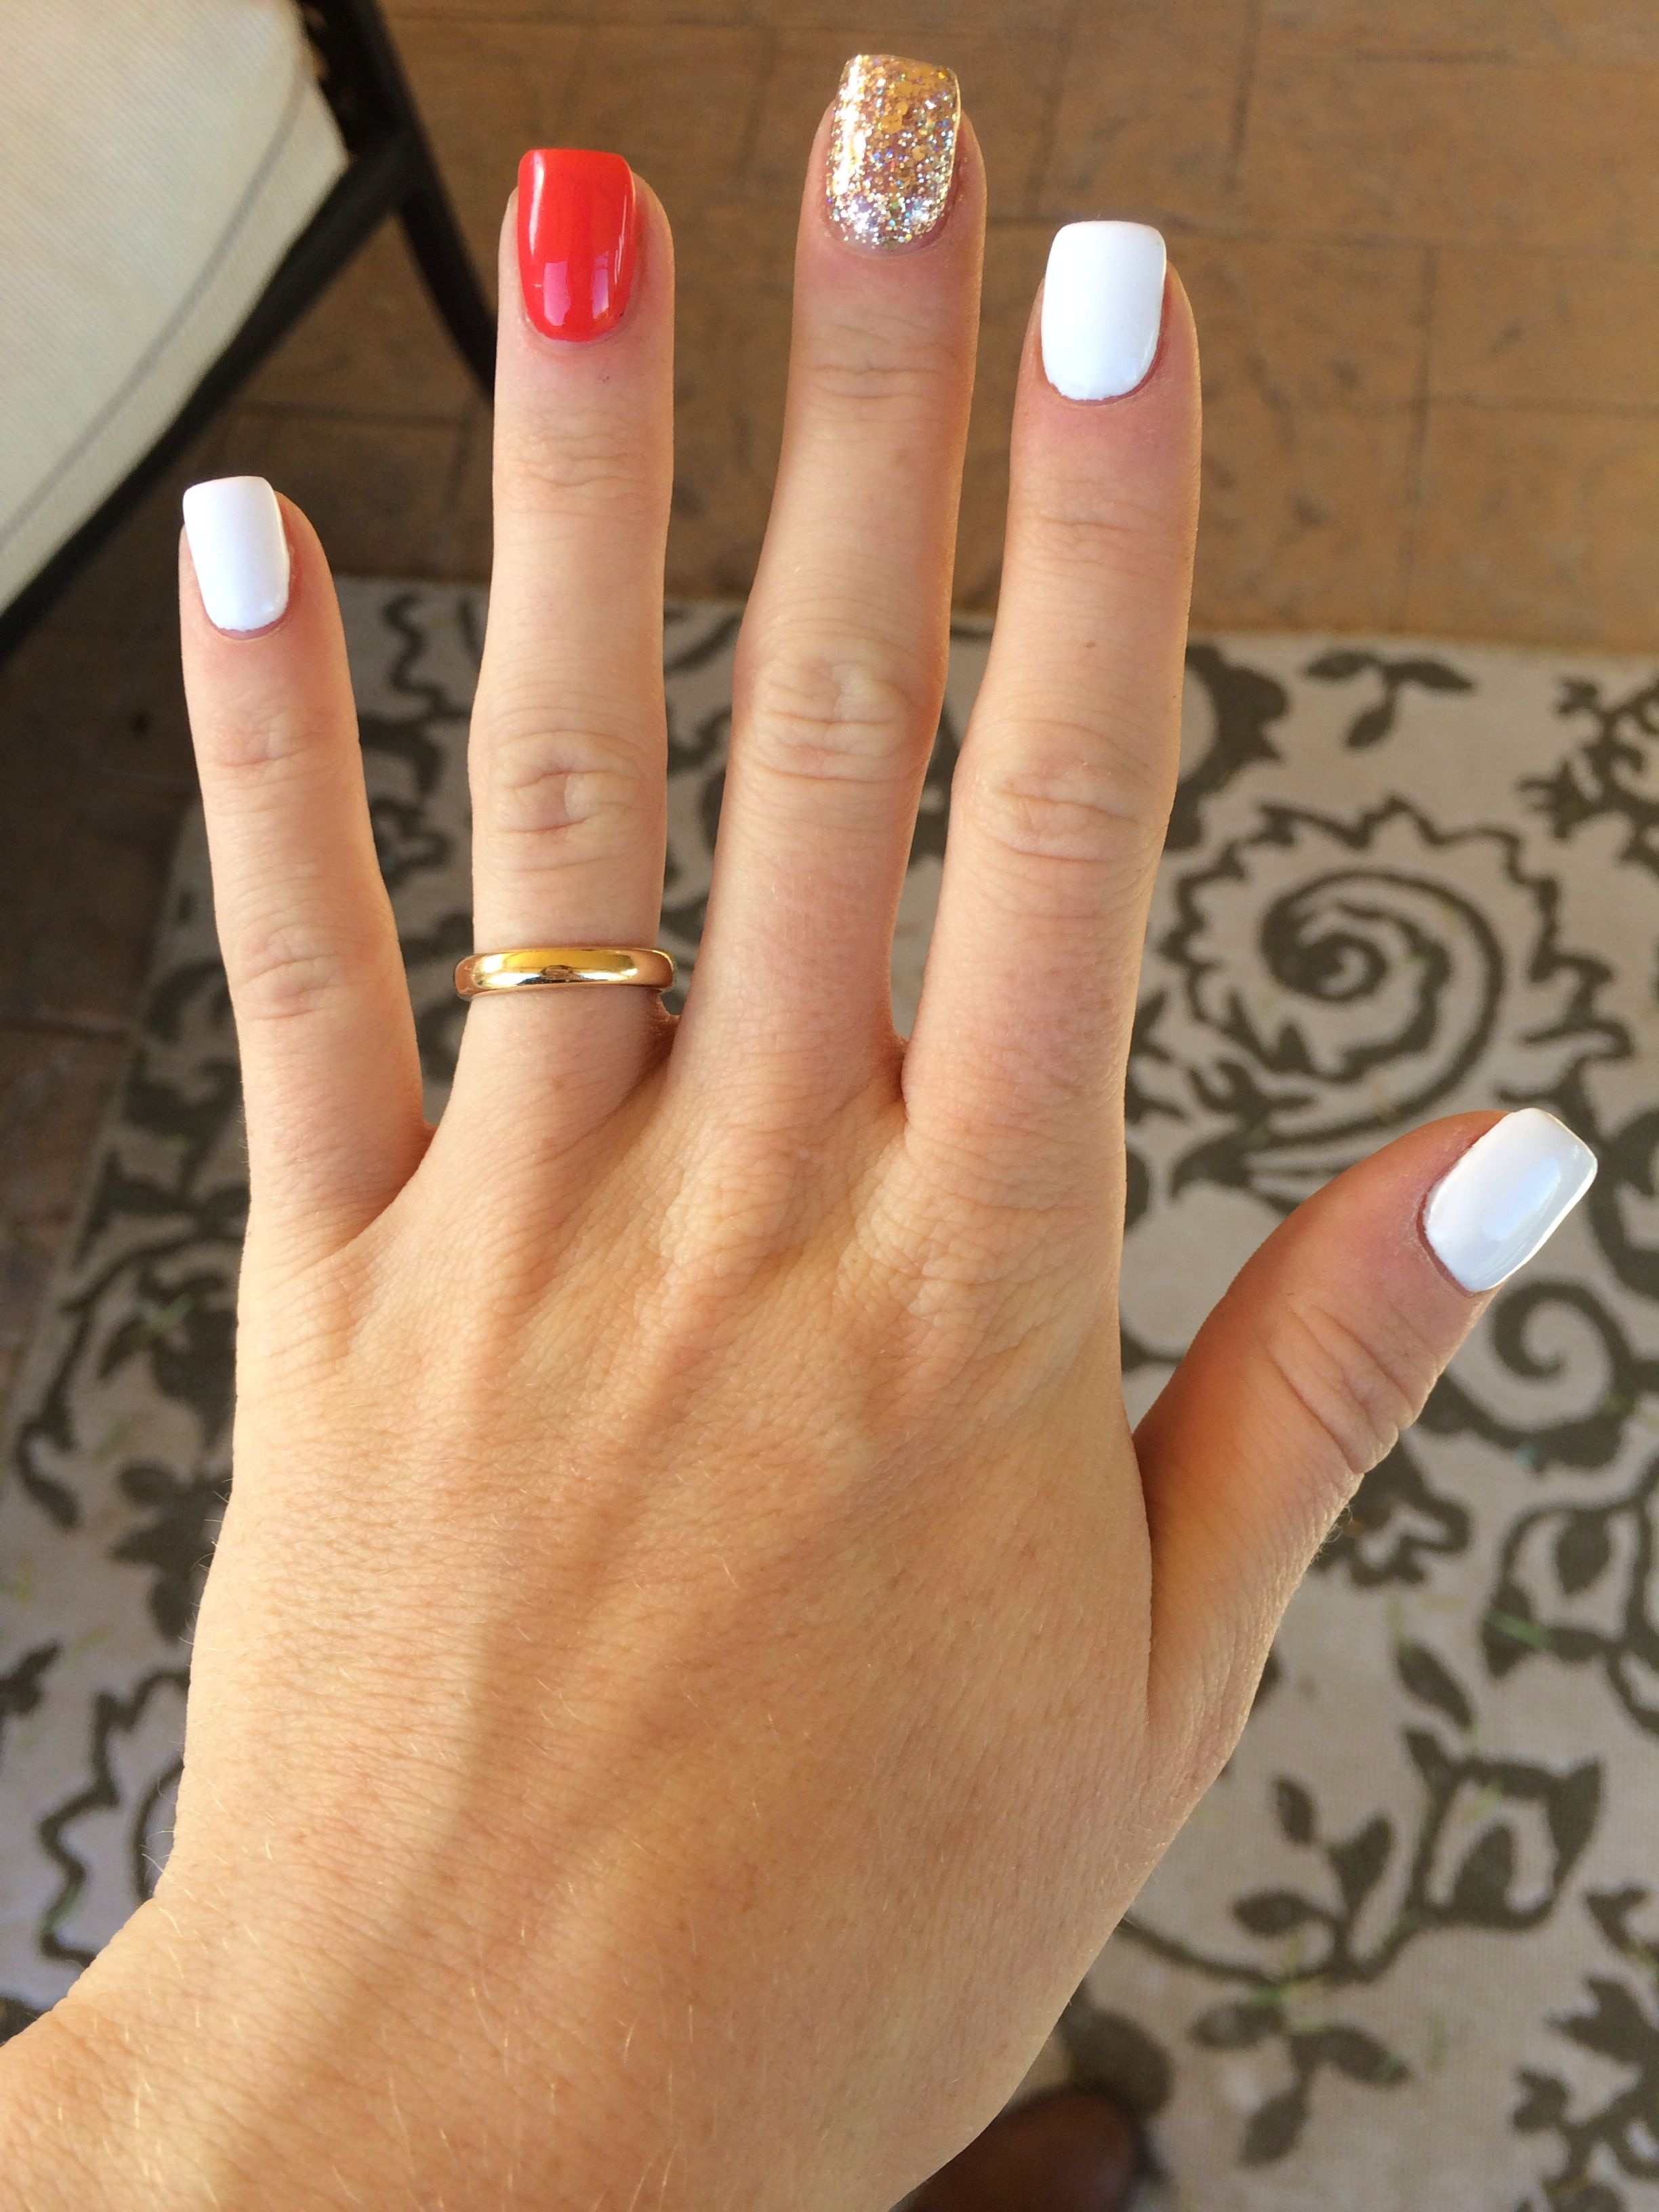 Too cute gel nails @glowrae | Hair, Nails, Make-up and all things ...